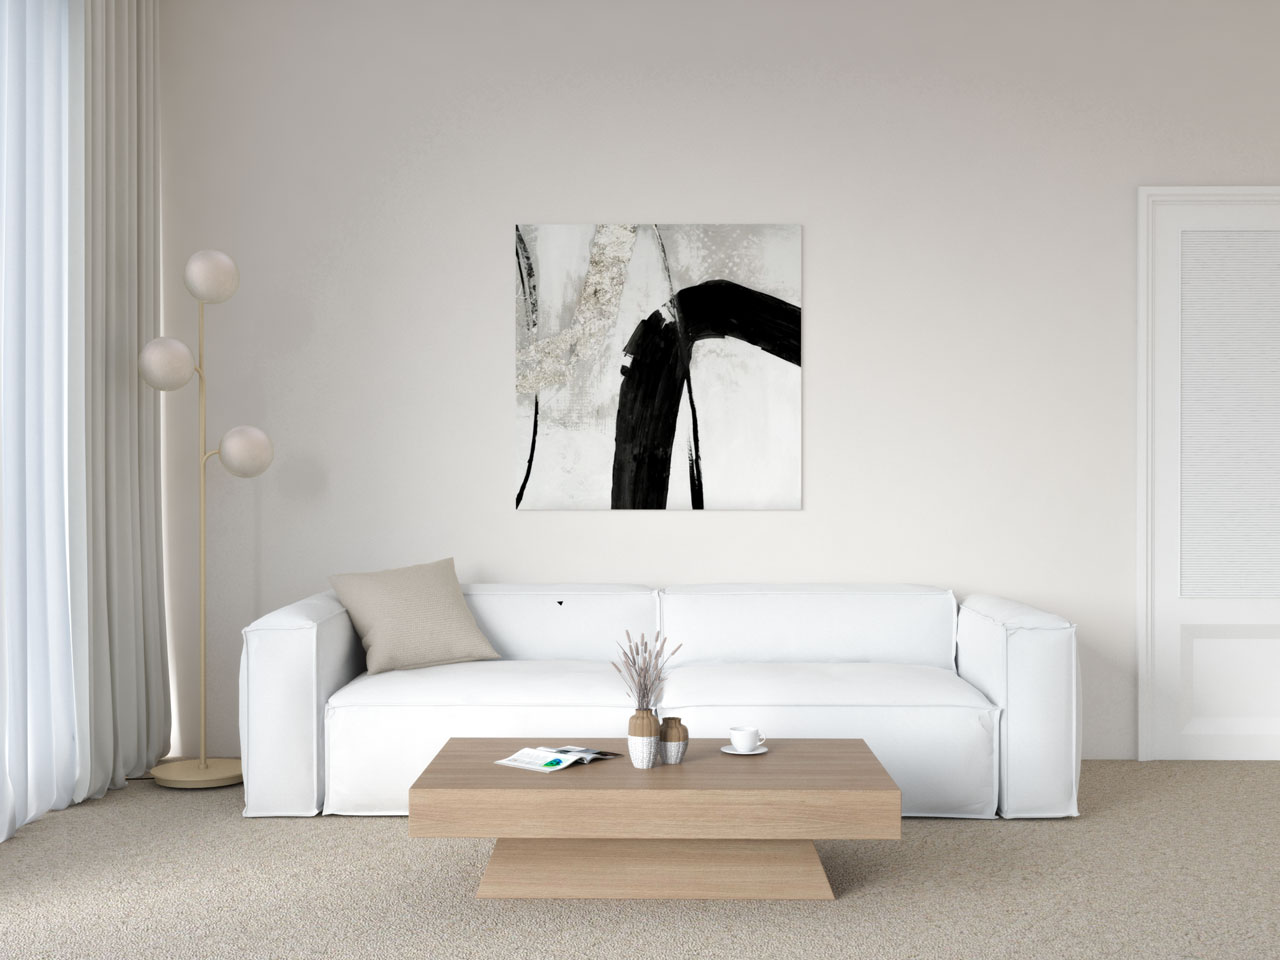 Living room with white couch and tan carpet flooring